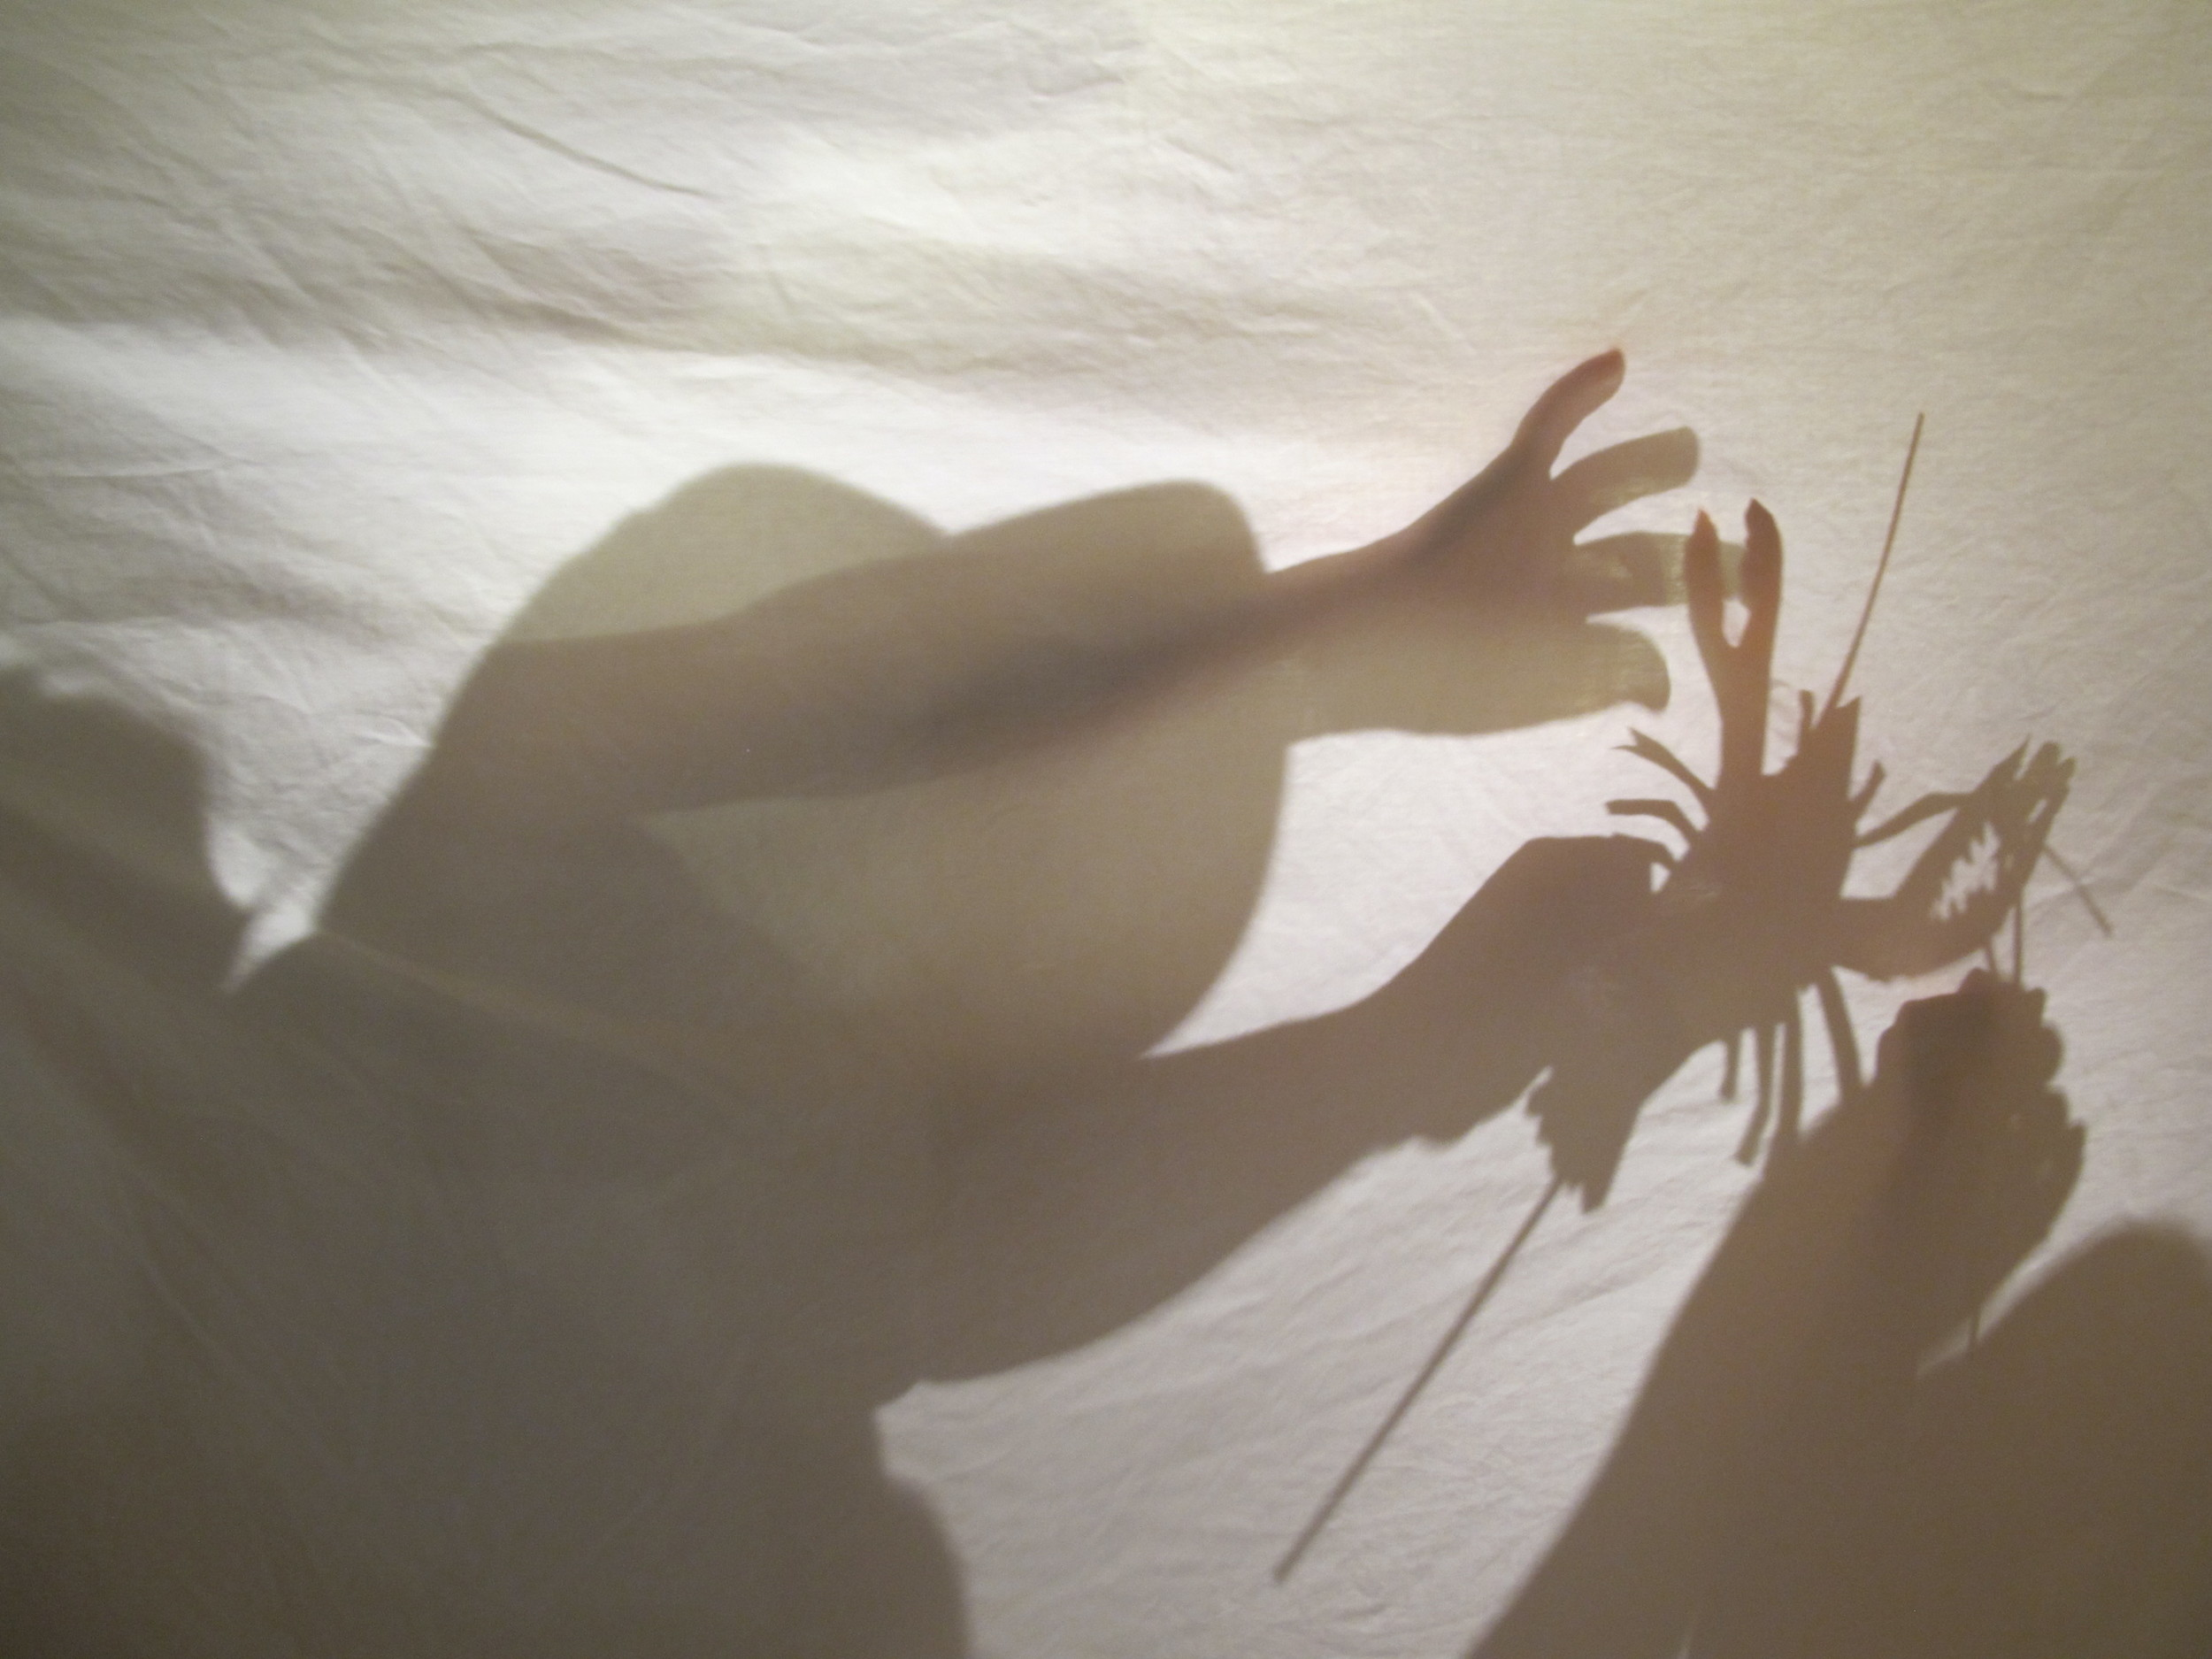 Our shadow-puppet-making workshop yesterday brought all sorts of sea creatures—and creative children—to life.